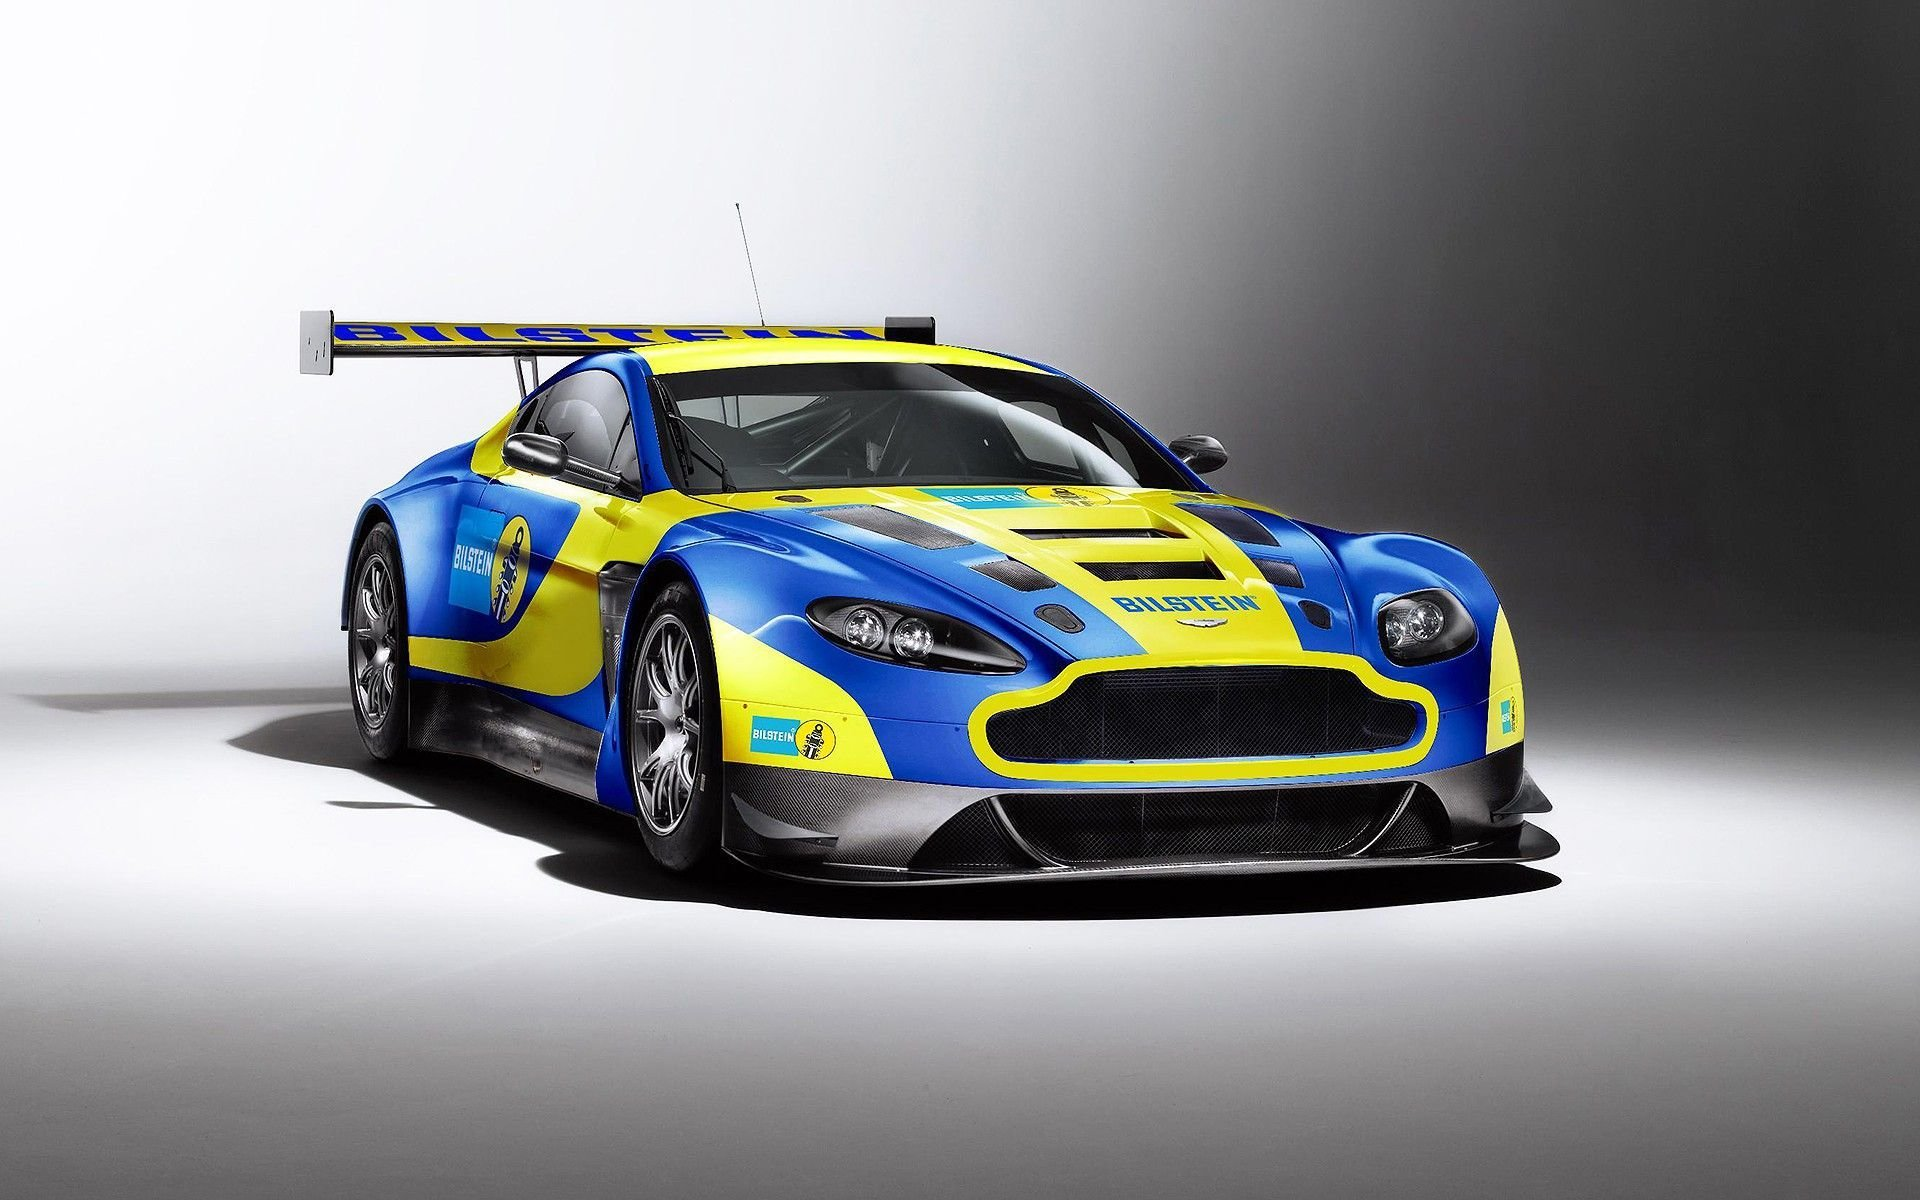 Latest Free Download Aston Martin Racing V12 Vantage Gt3 Full Hd Free Download